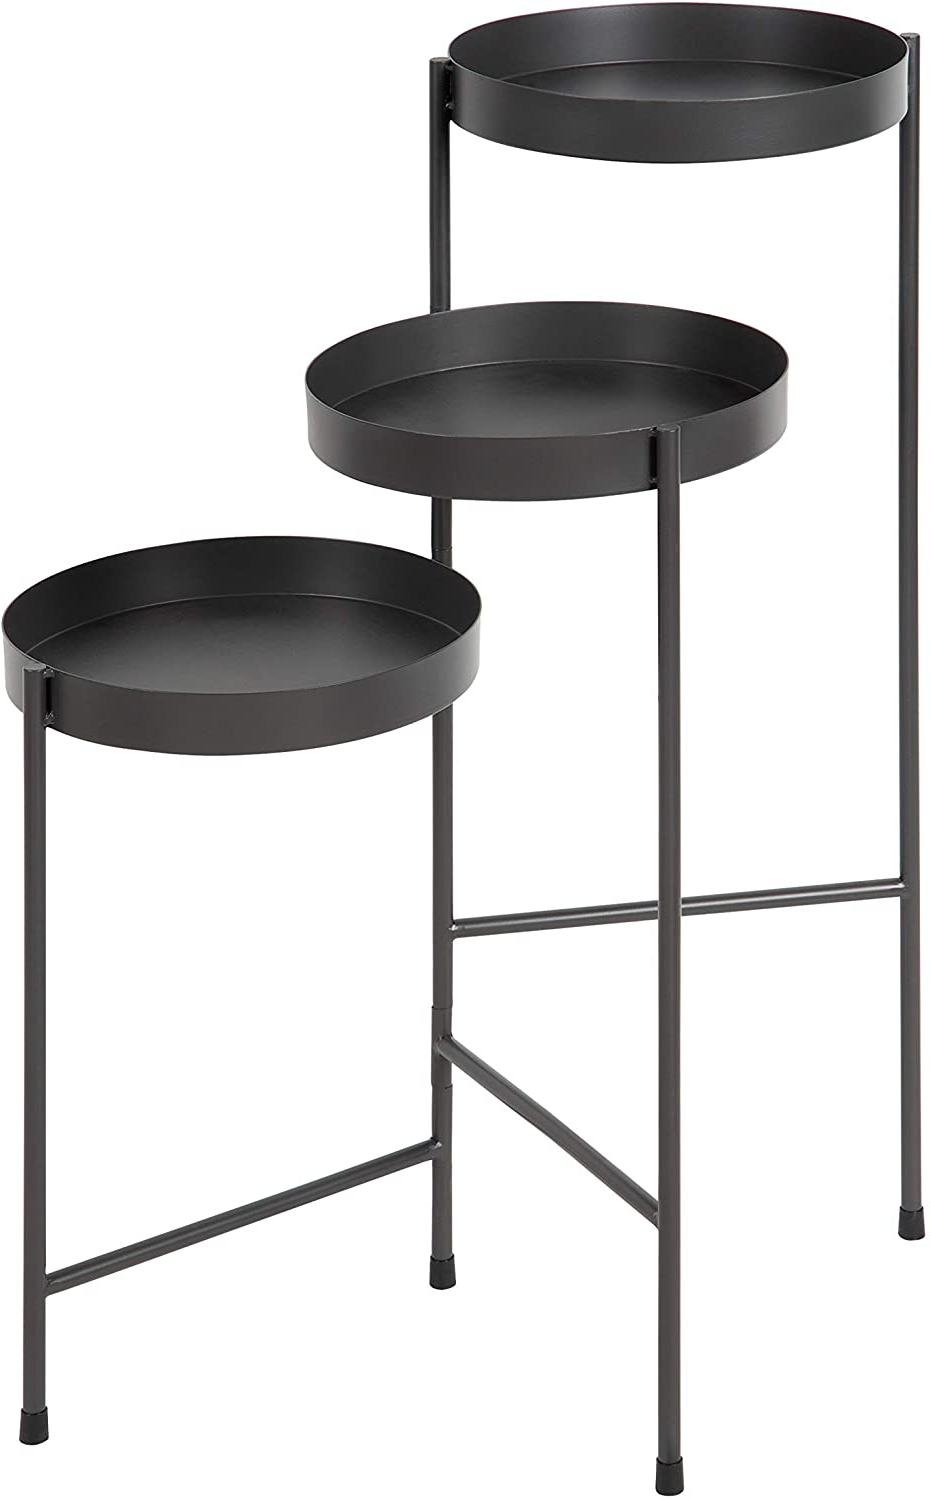 Bracey Garden Stools Pertaining To Well Known Kate And Laurel Finn Tri Level Metal Plant Stand, Charcoal Gray, Decorative Hinged Tray Stand Display (View 27 of 30)